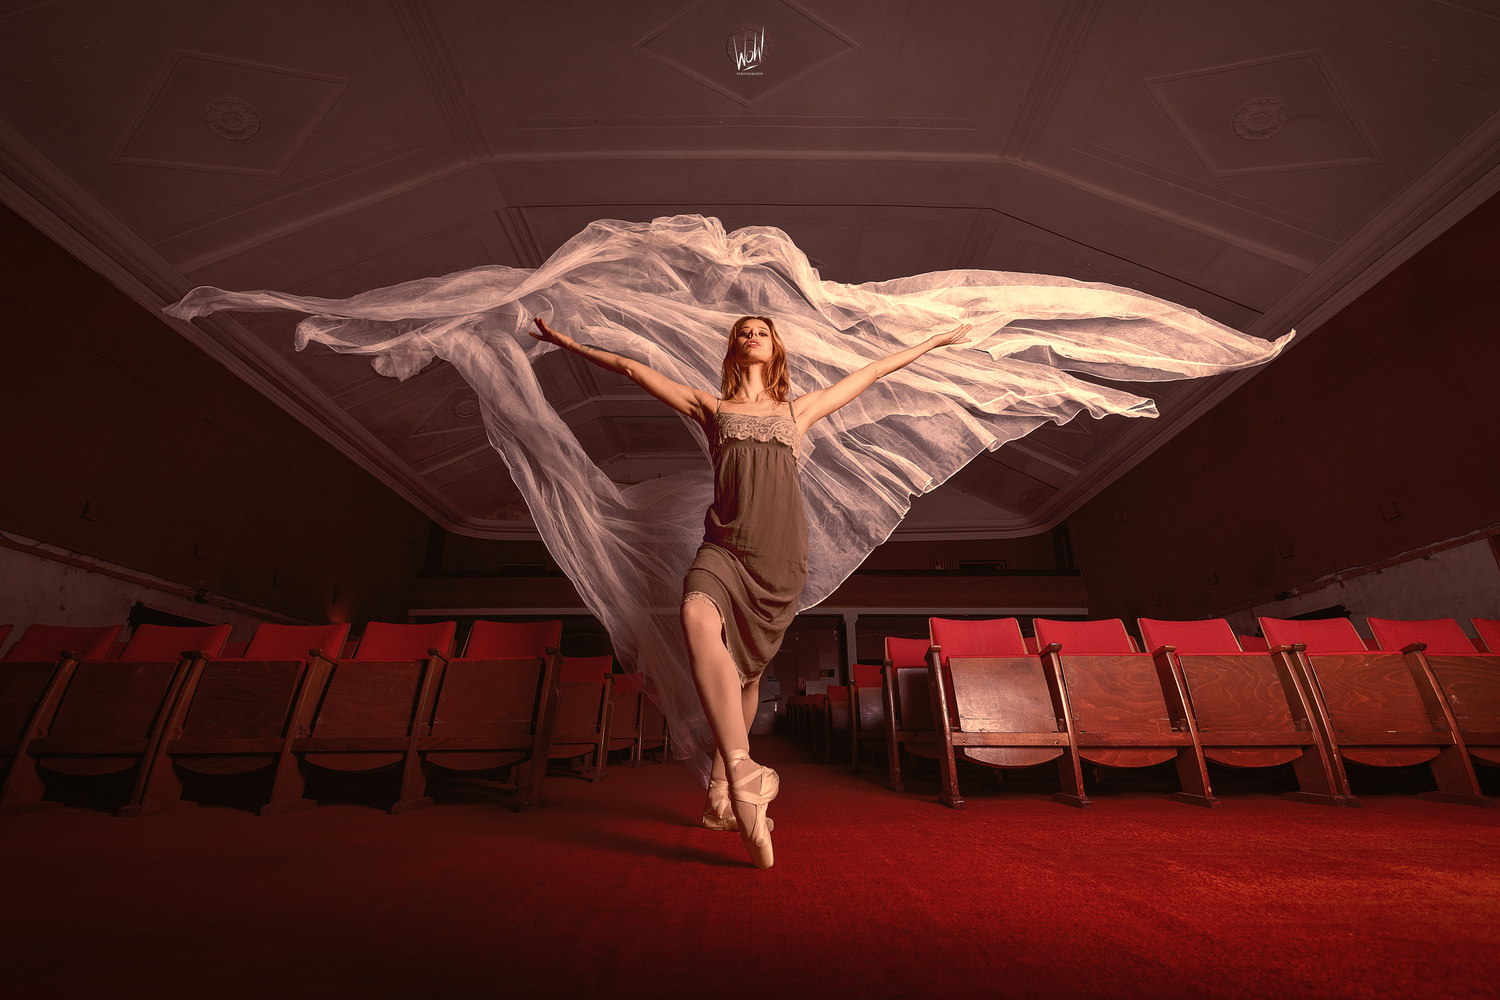 Angel Dust by Thomas Wohl